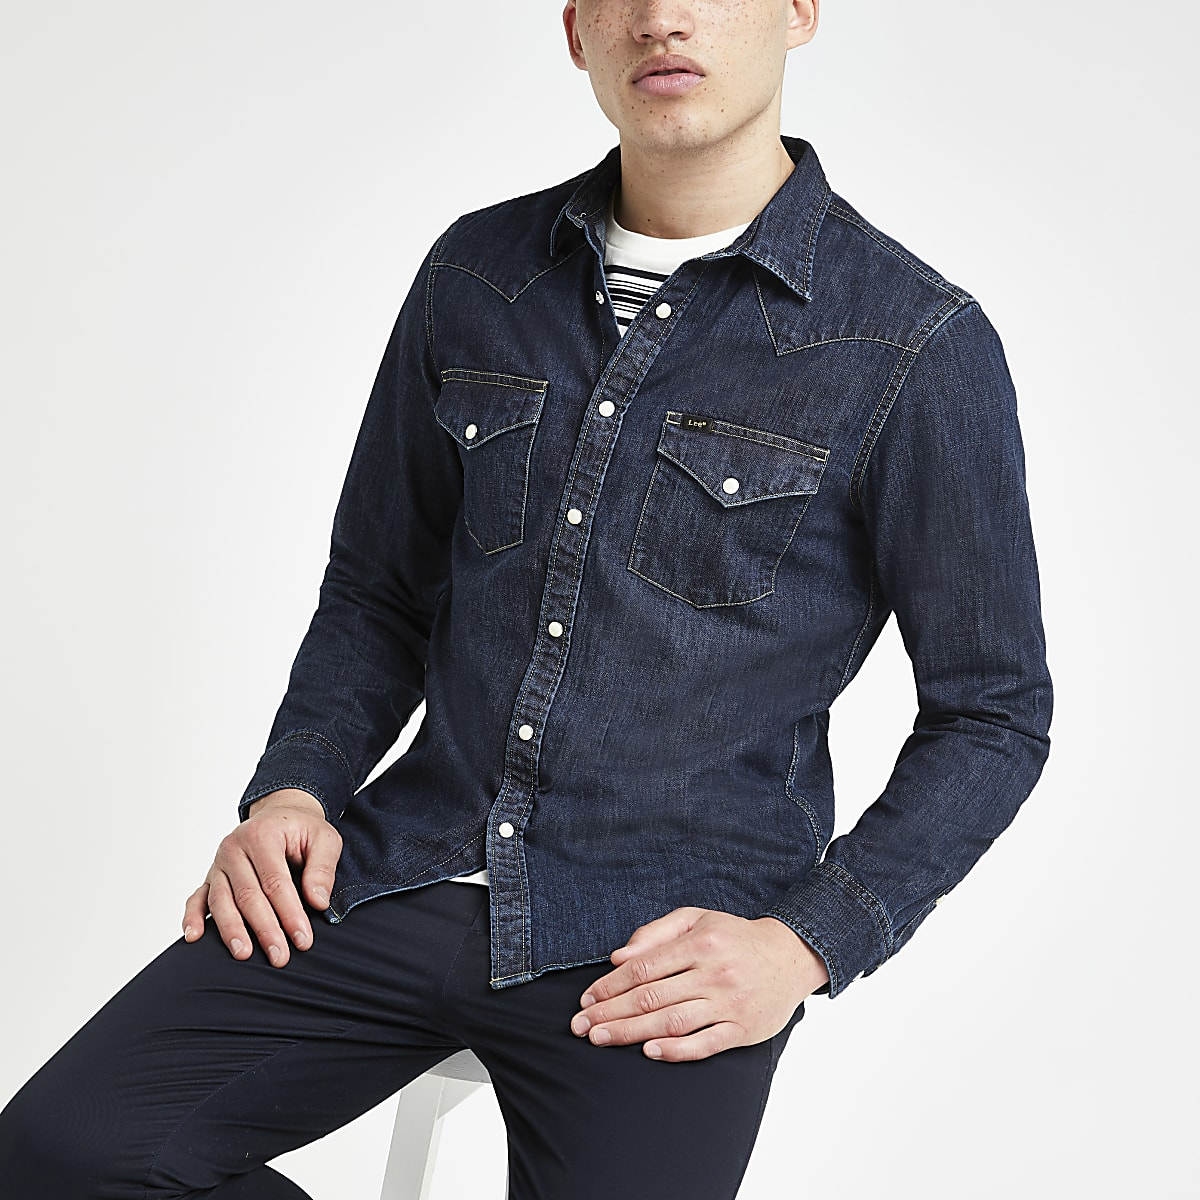 Lee dark blue denim western long sleeve shirt